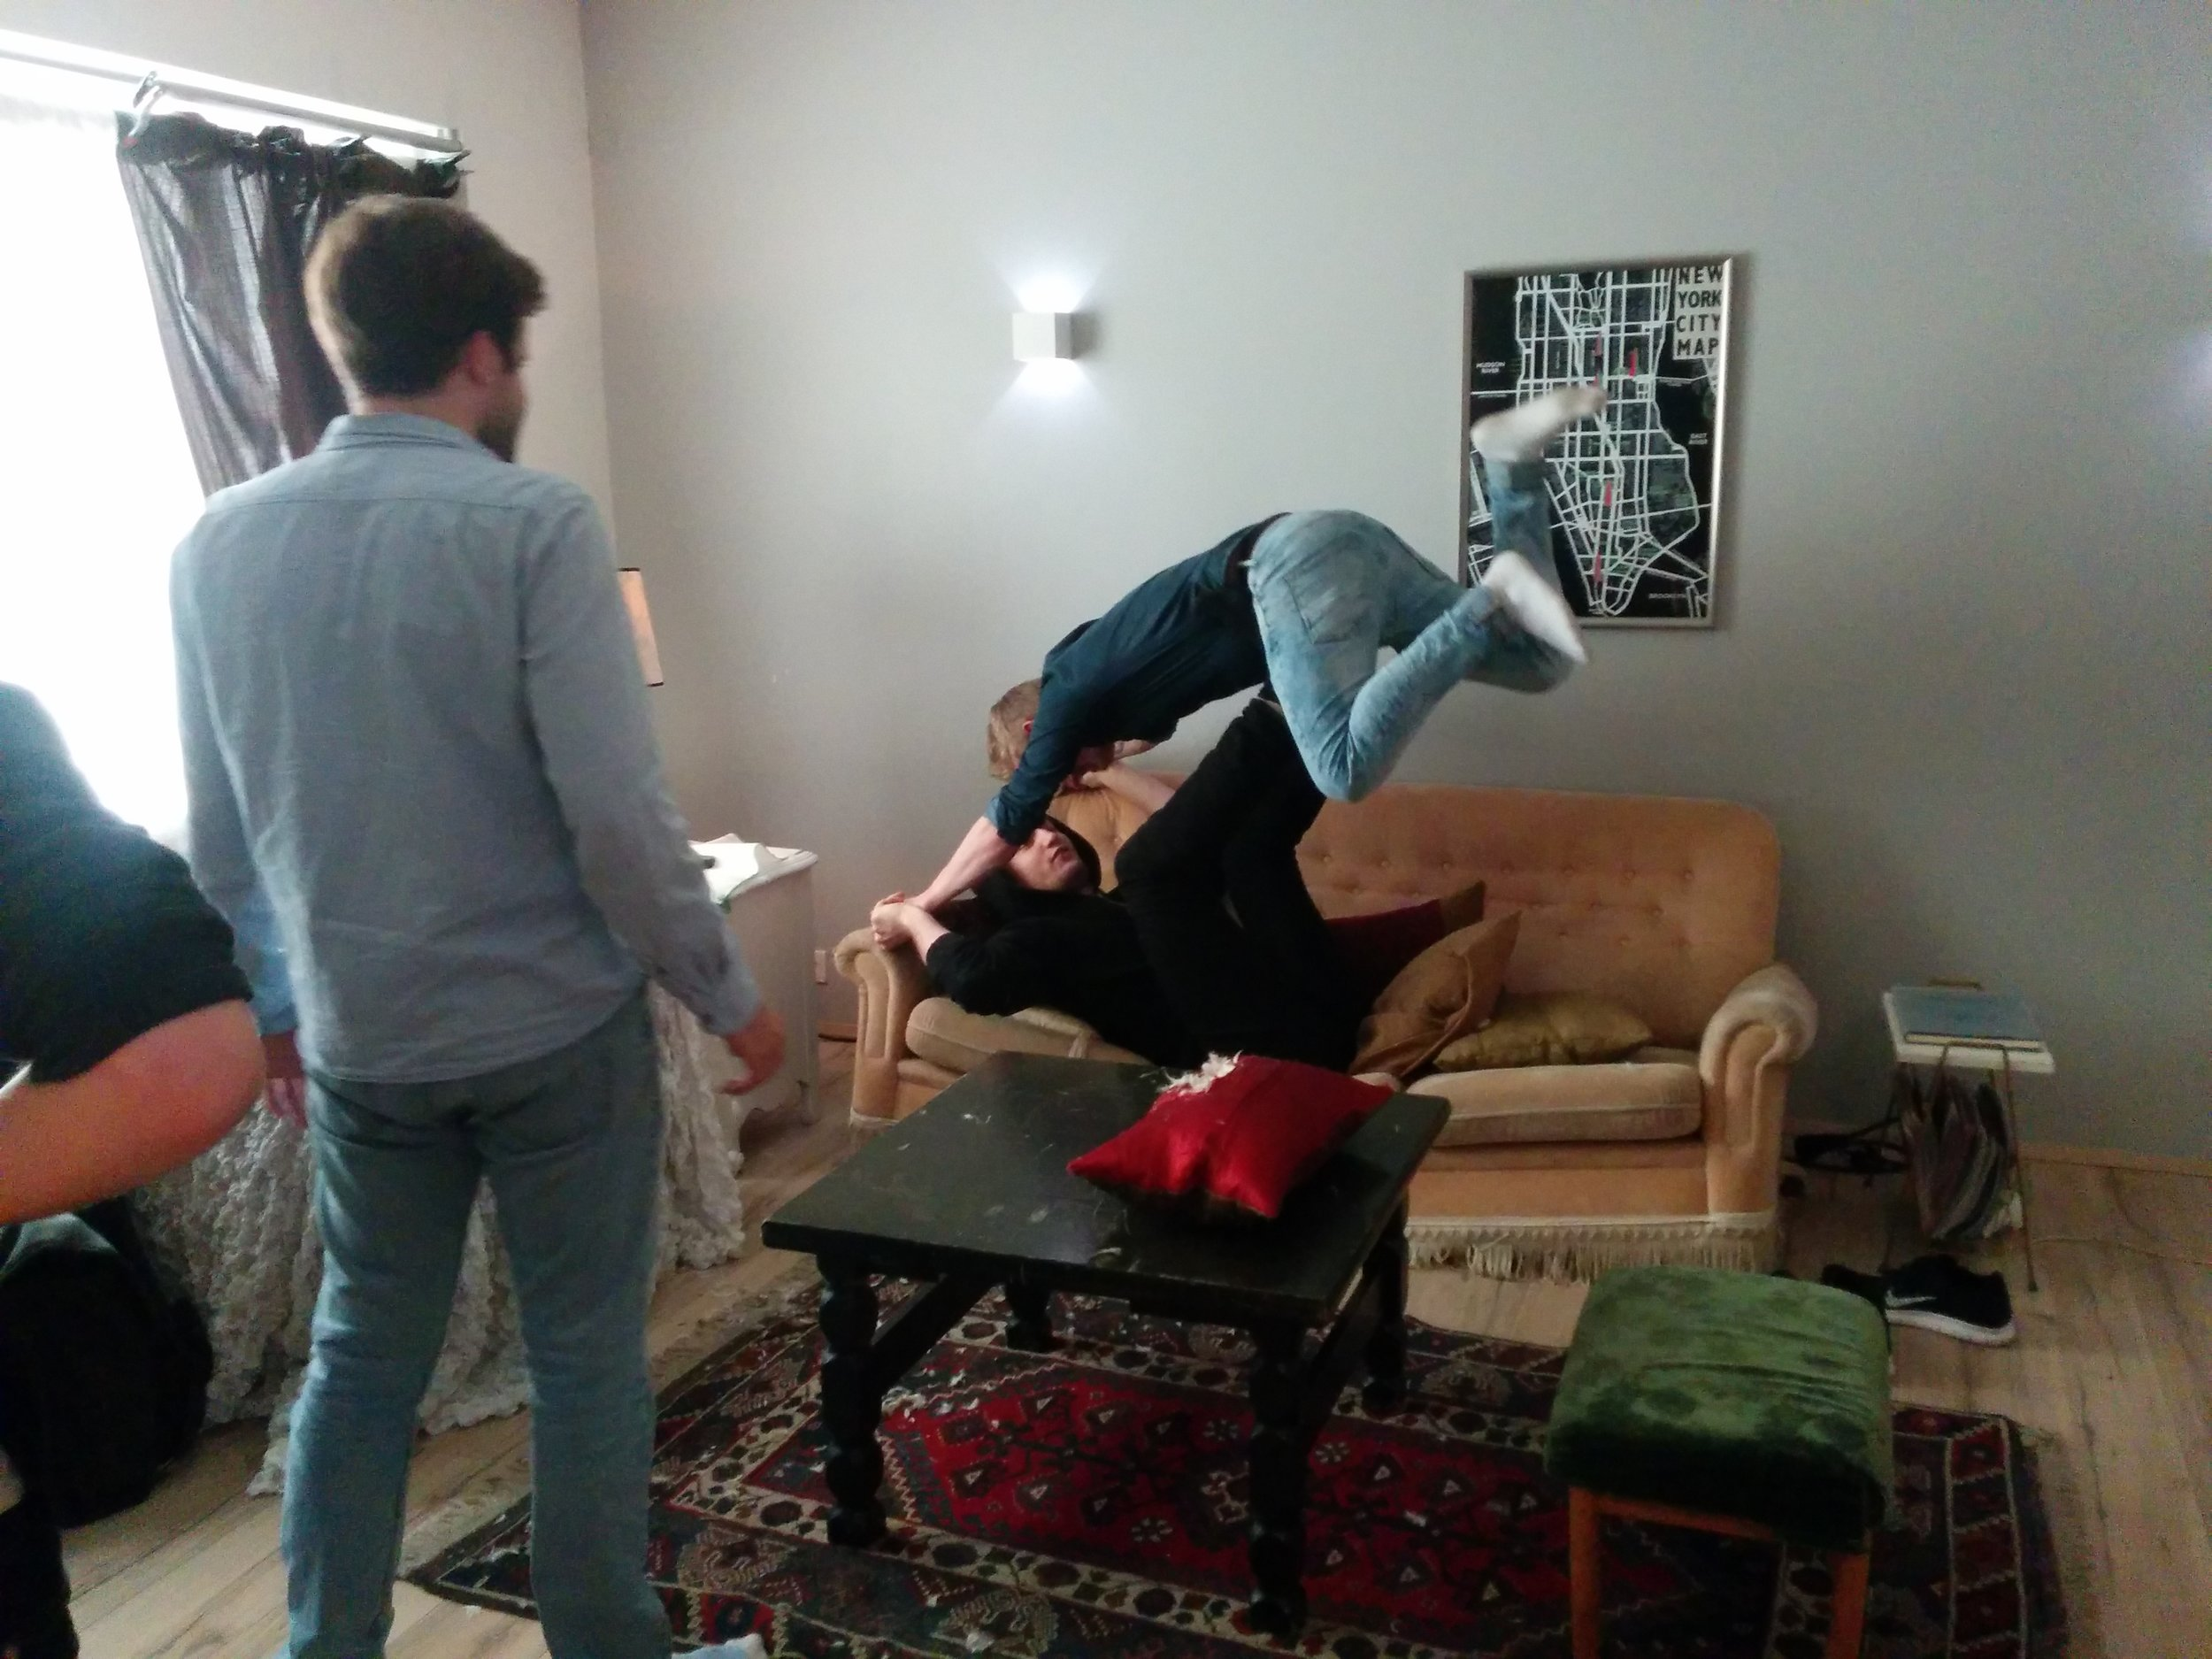 Director and stunt man practicing the fight scene.